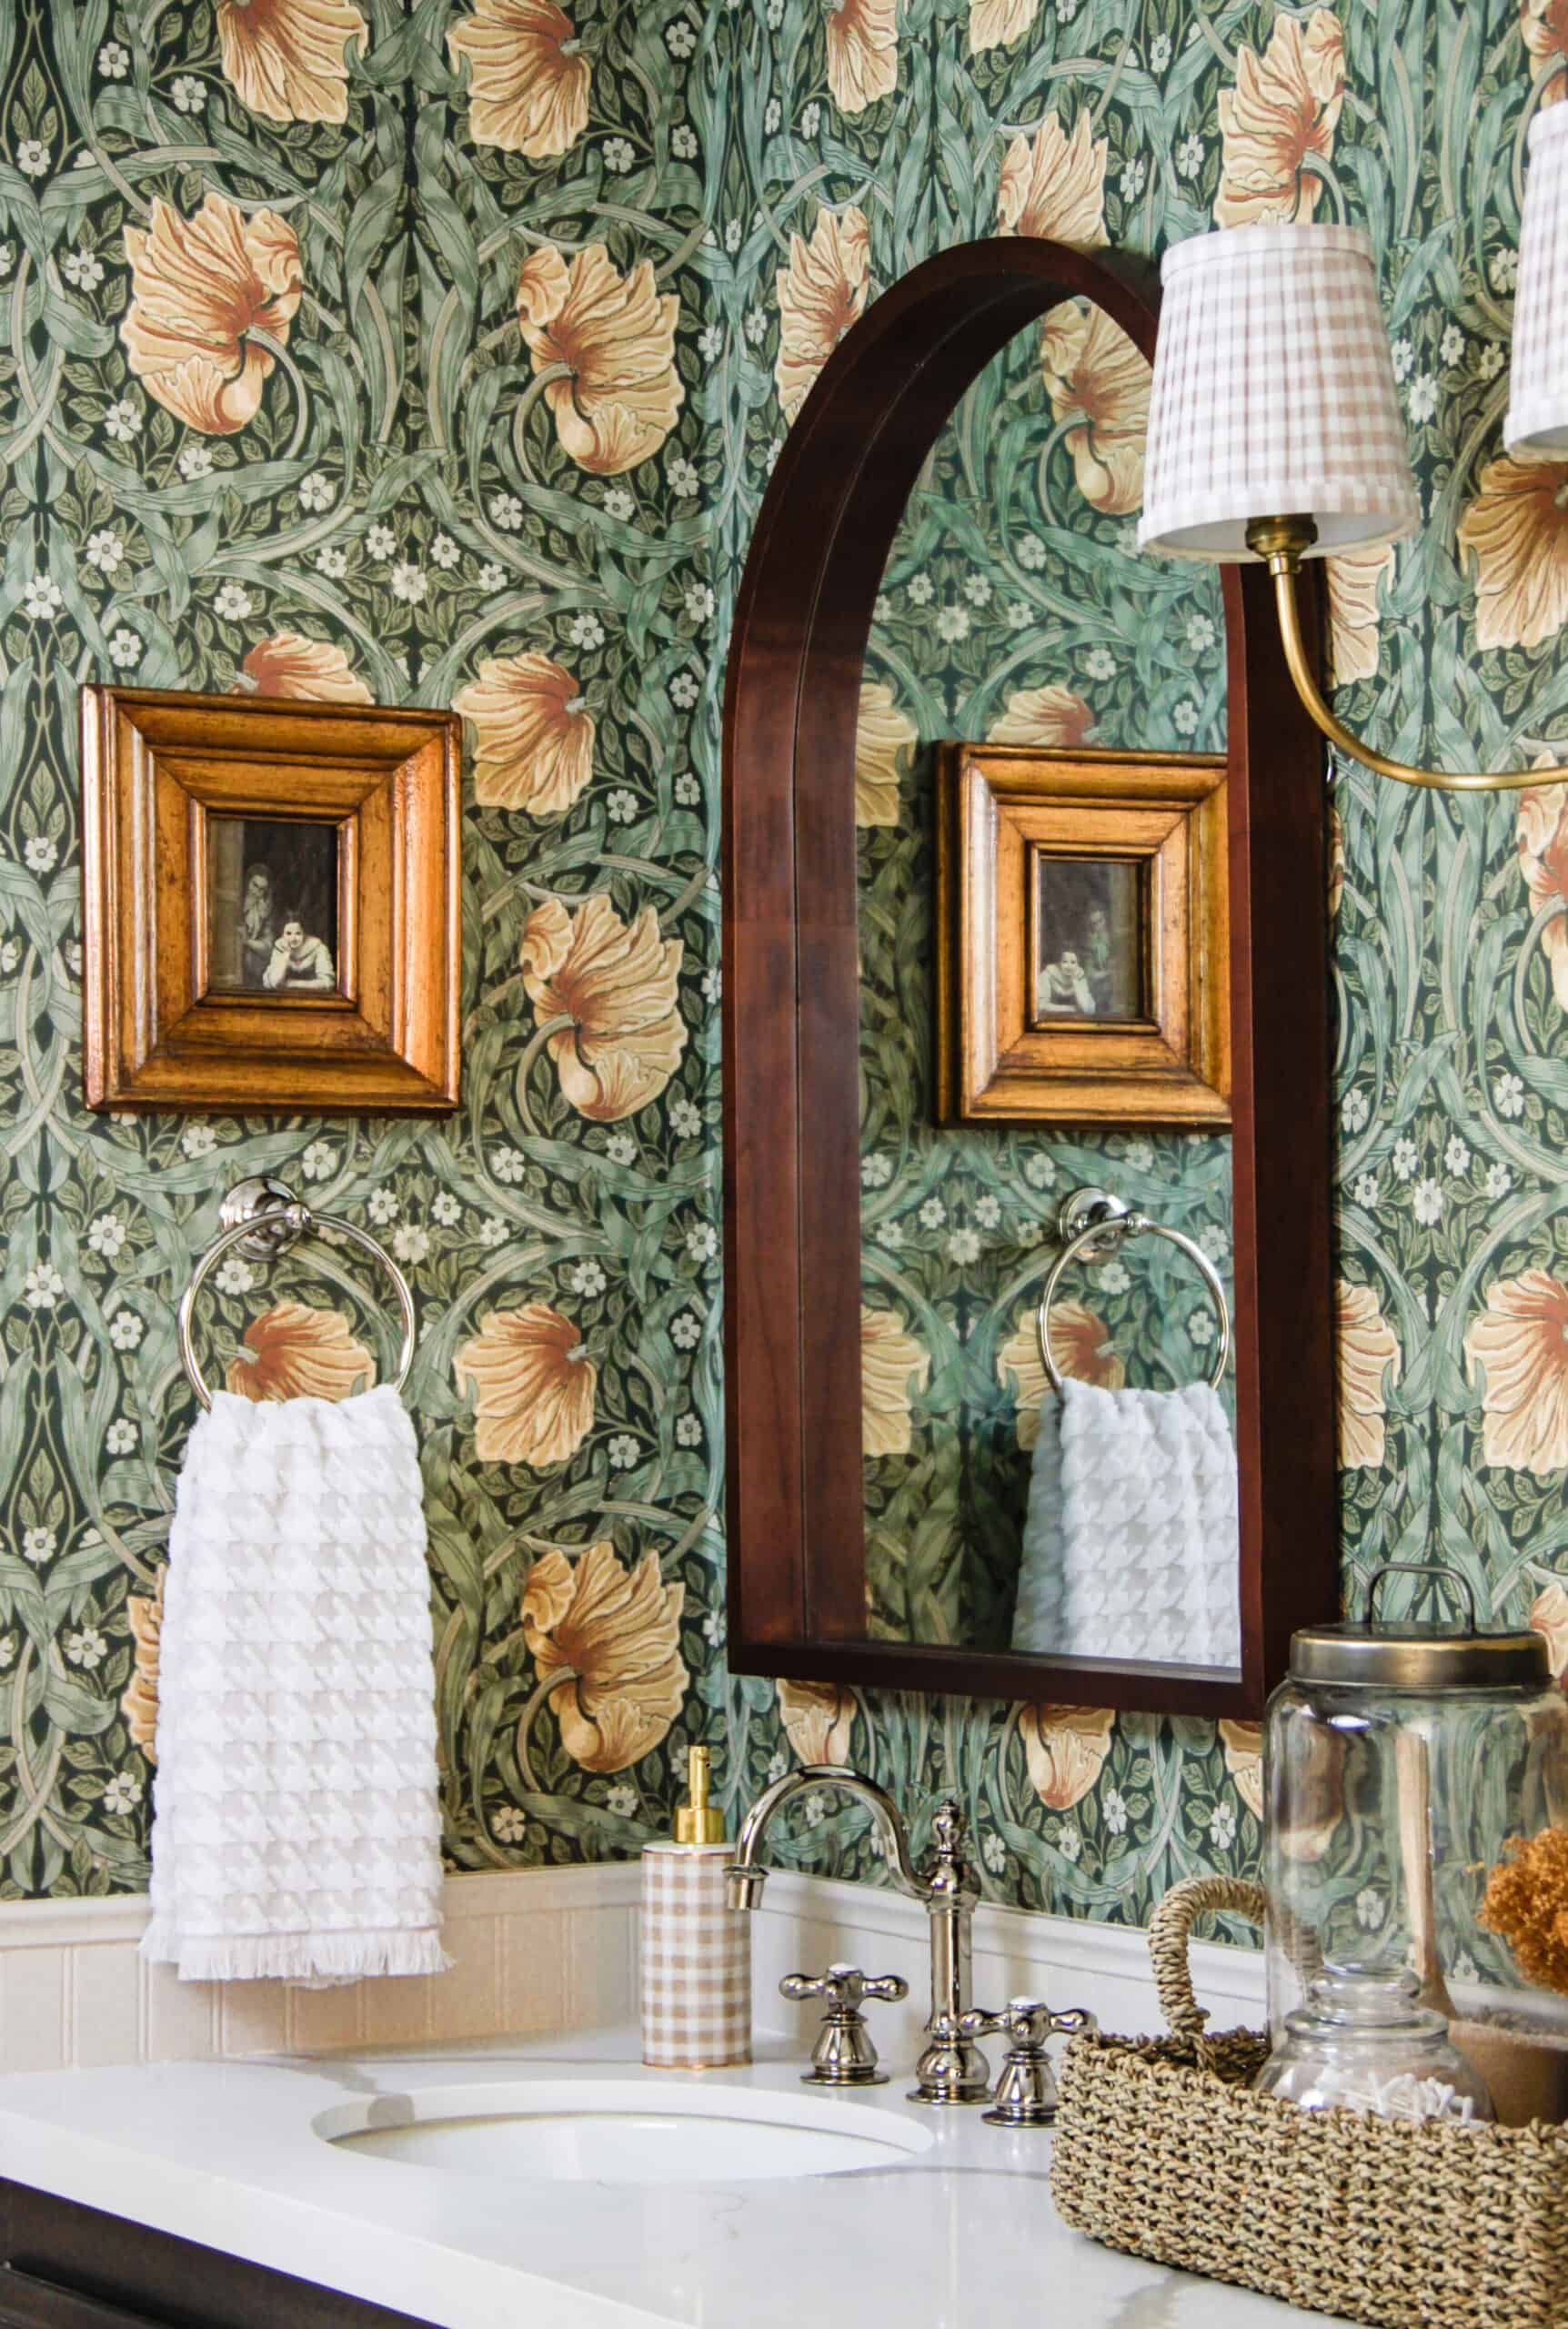 storybook style bathroom with floral wallpaper and arched mirror